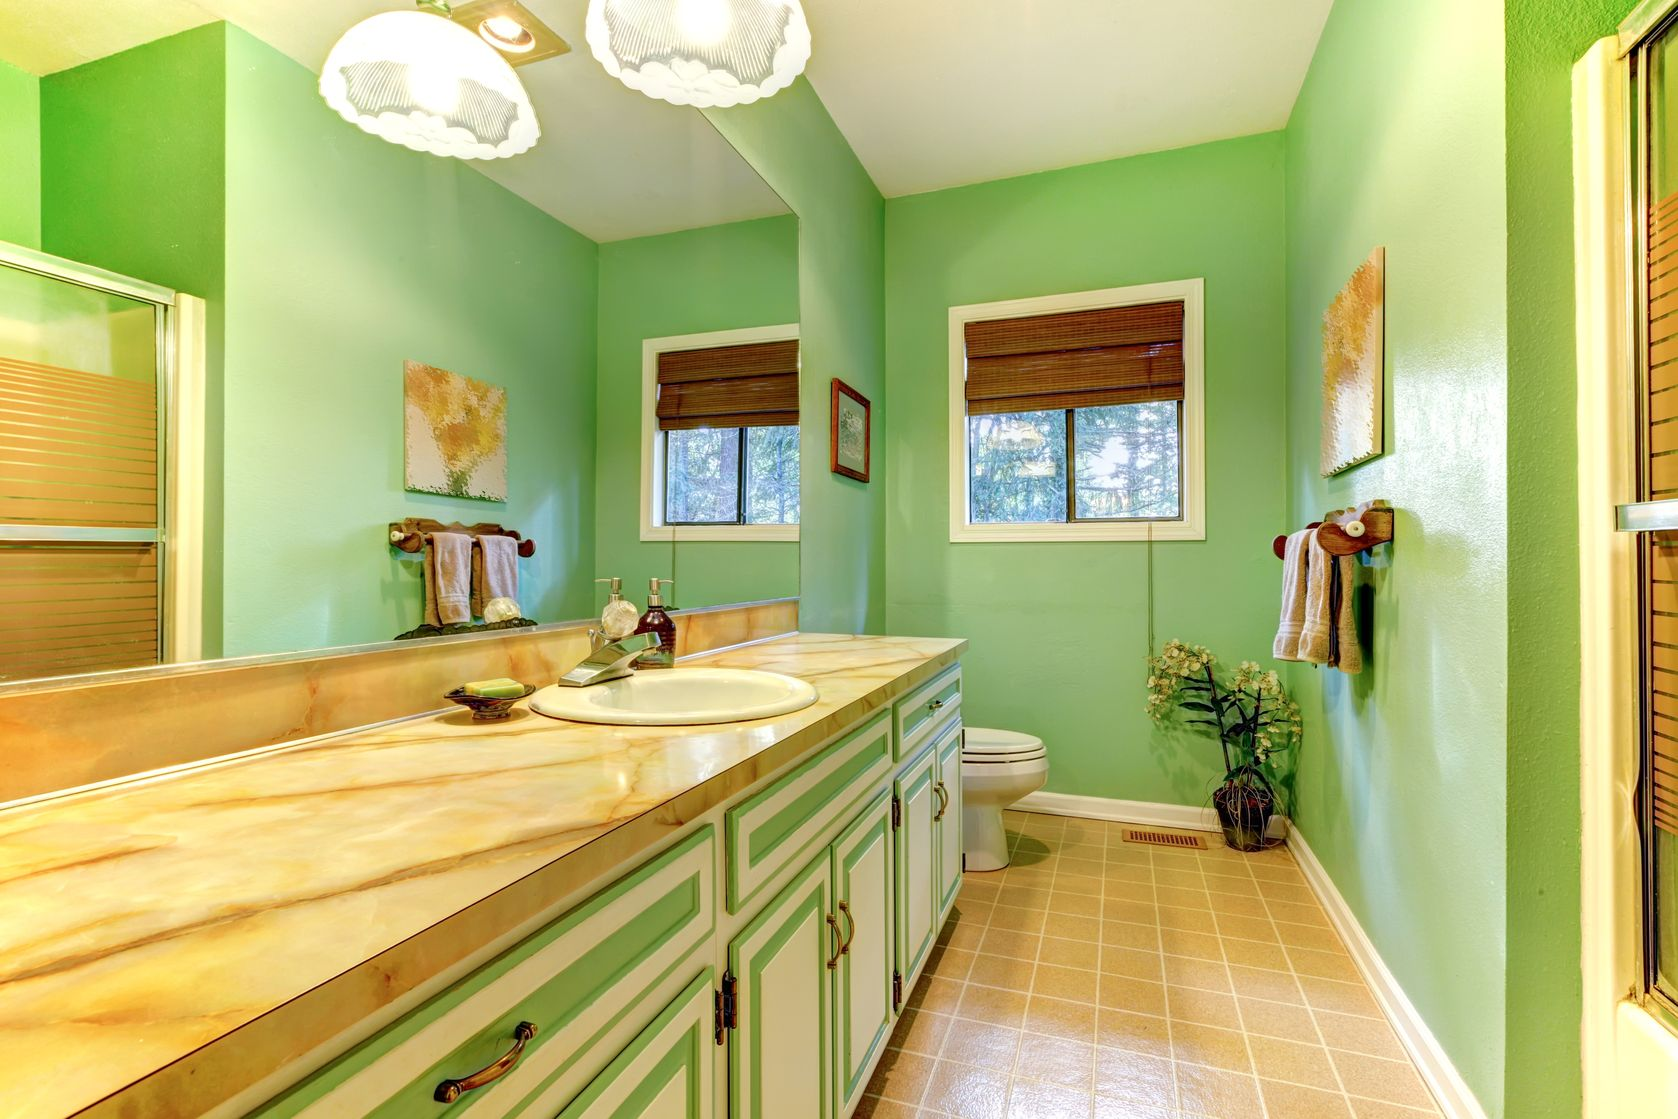 Bathroom trends to avoid in 2018 what showroom buyers for Bathroom trends to avoid